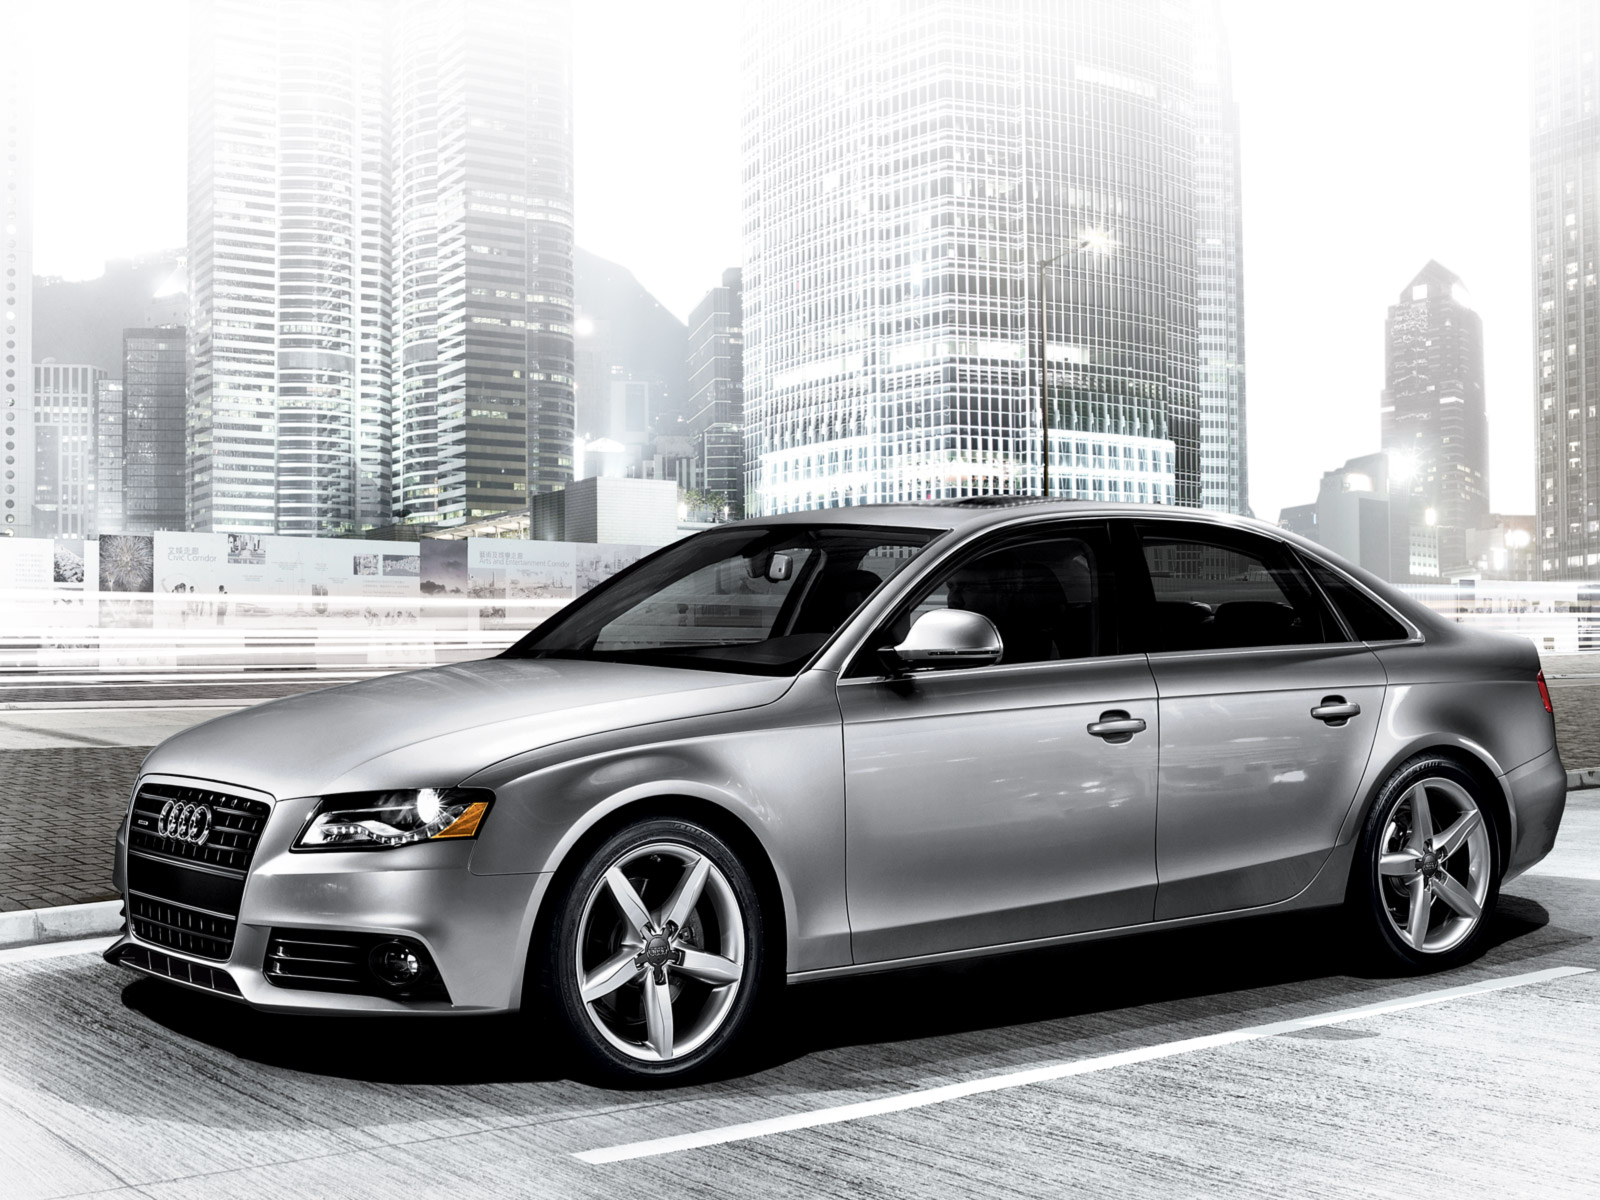 Used audi s8 for sale in canada 18